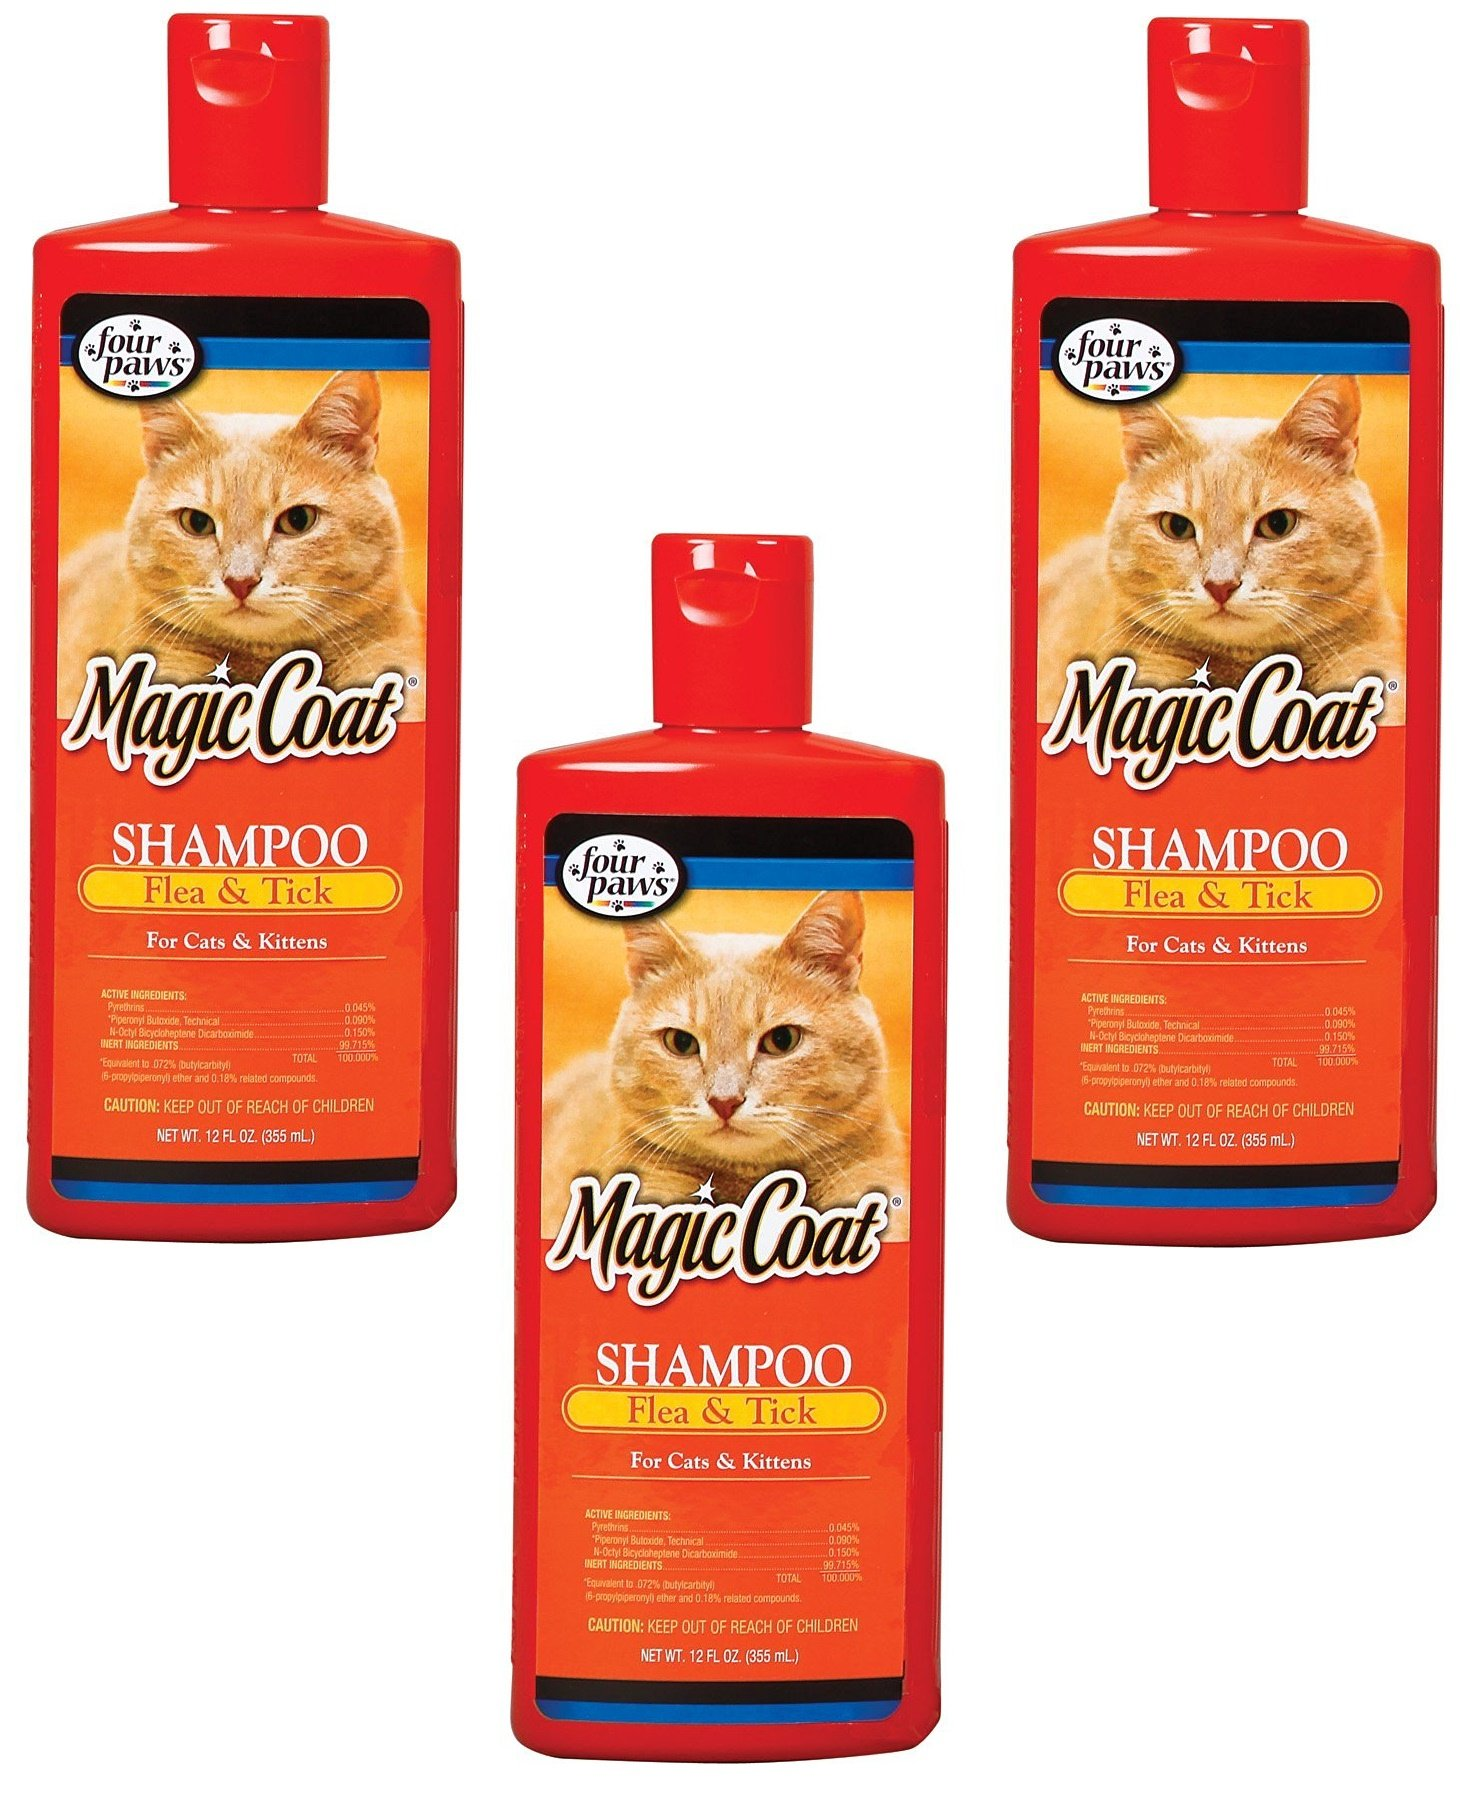 (3 Pack) Four-Paws Magic Coat Flea and Tick Cat Grooming Shampoos, 12 Ounce Each by Four Paws (Image #1)